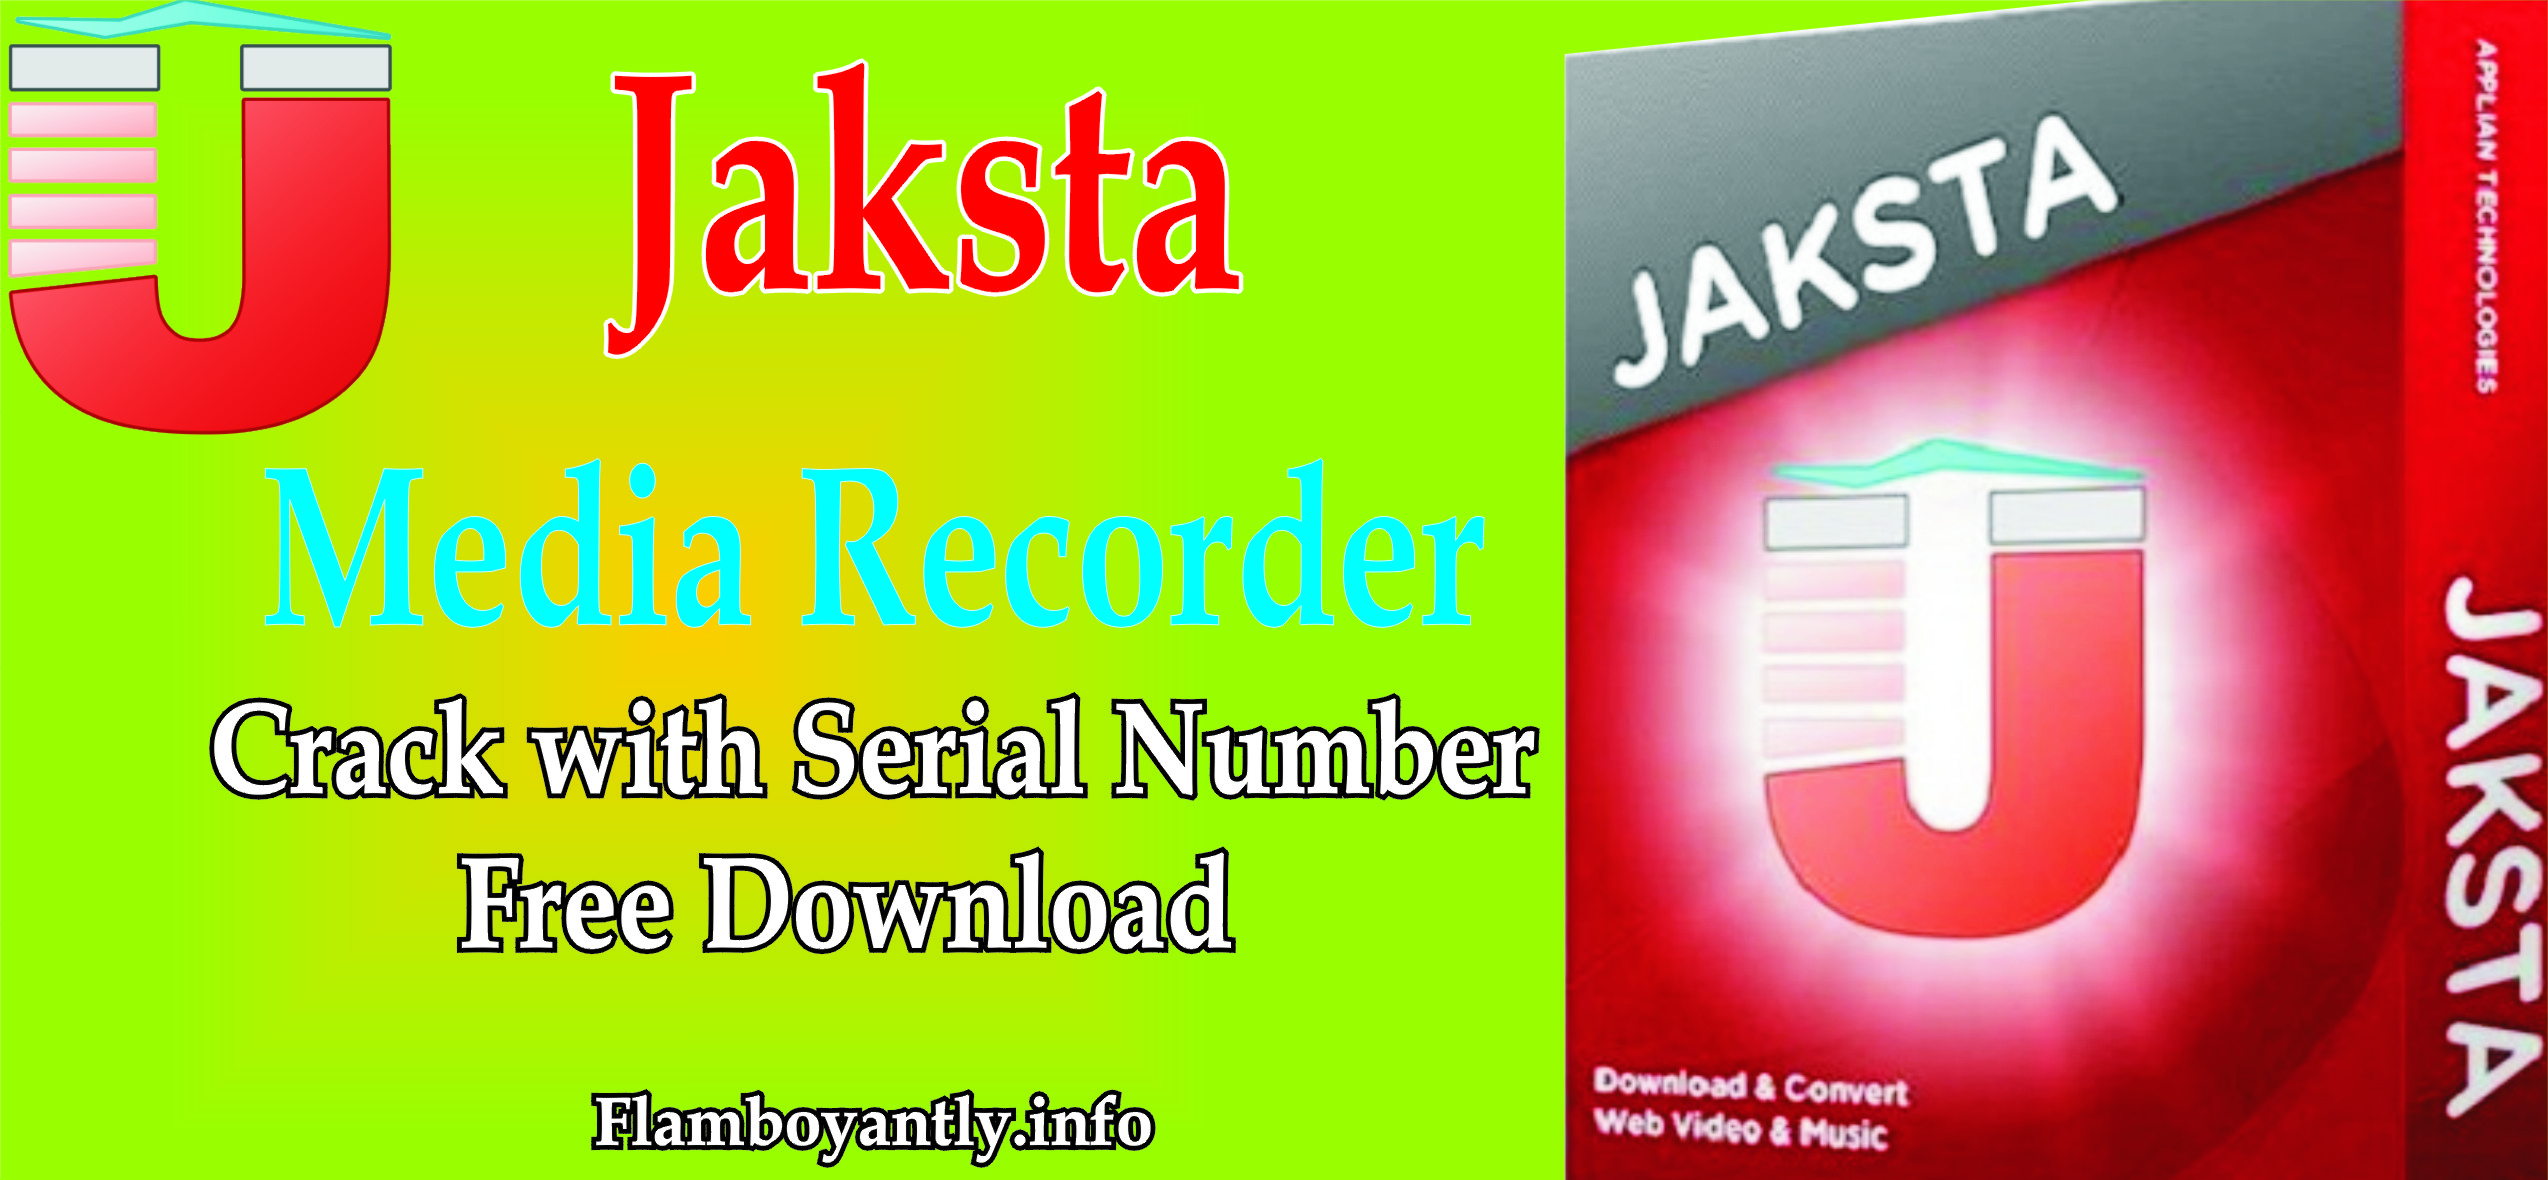 Jaksta Media Recorder Crack with Serial Number Free Download